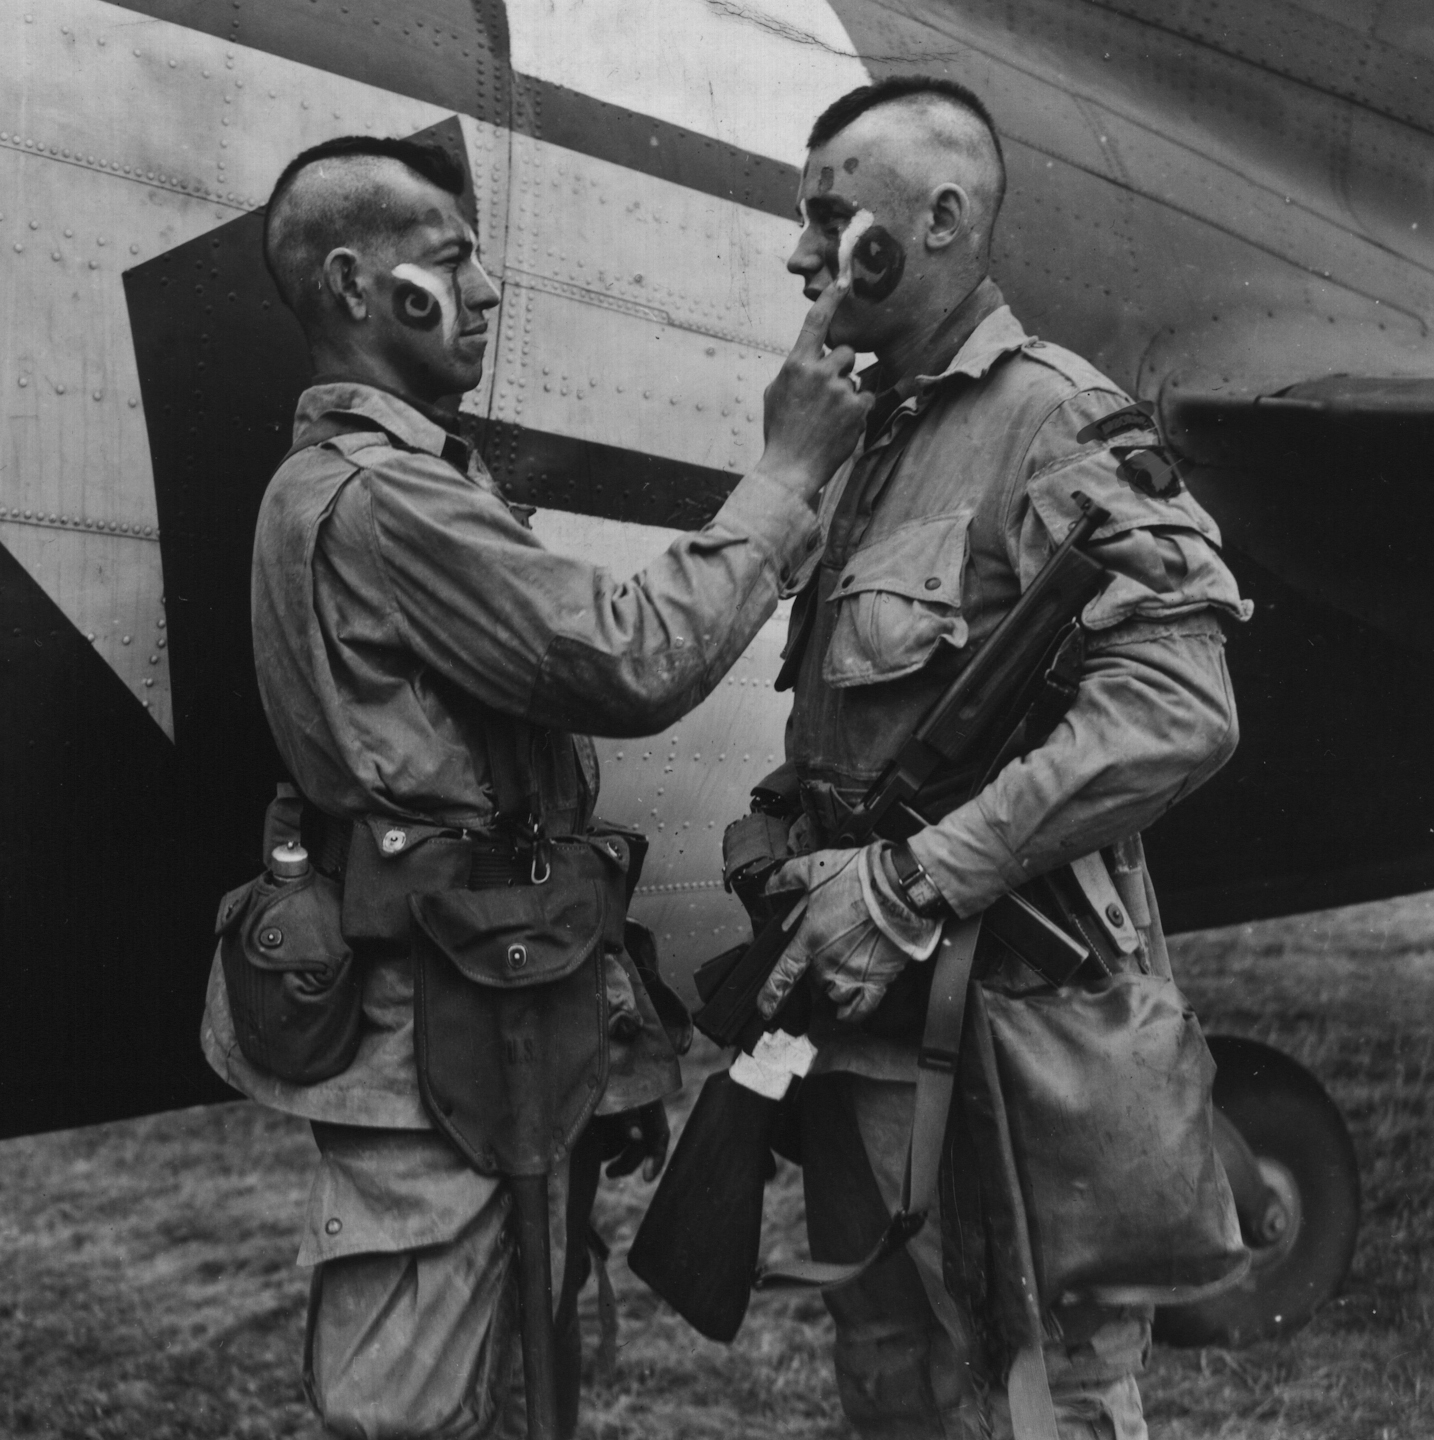 http://en.academic.ru/pictures/enwiki/80/Paratrooper_applies_war_paint_111-SC-193551cropped.jpg